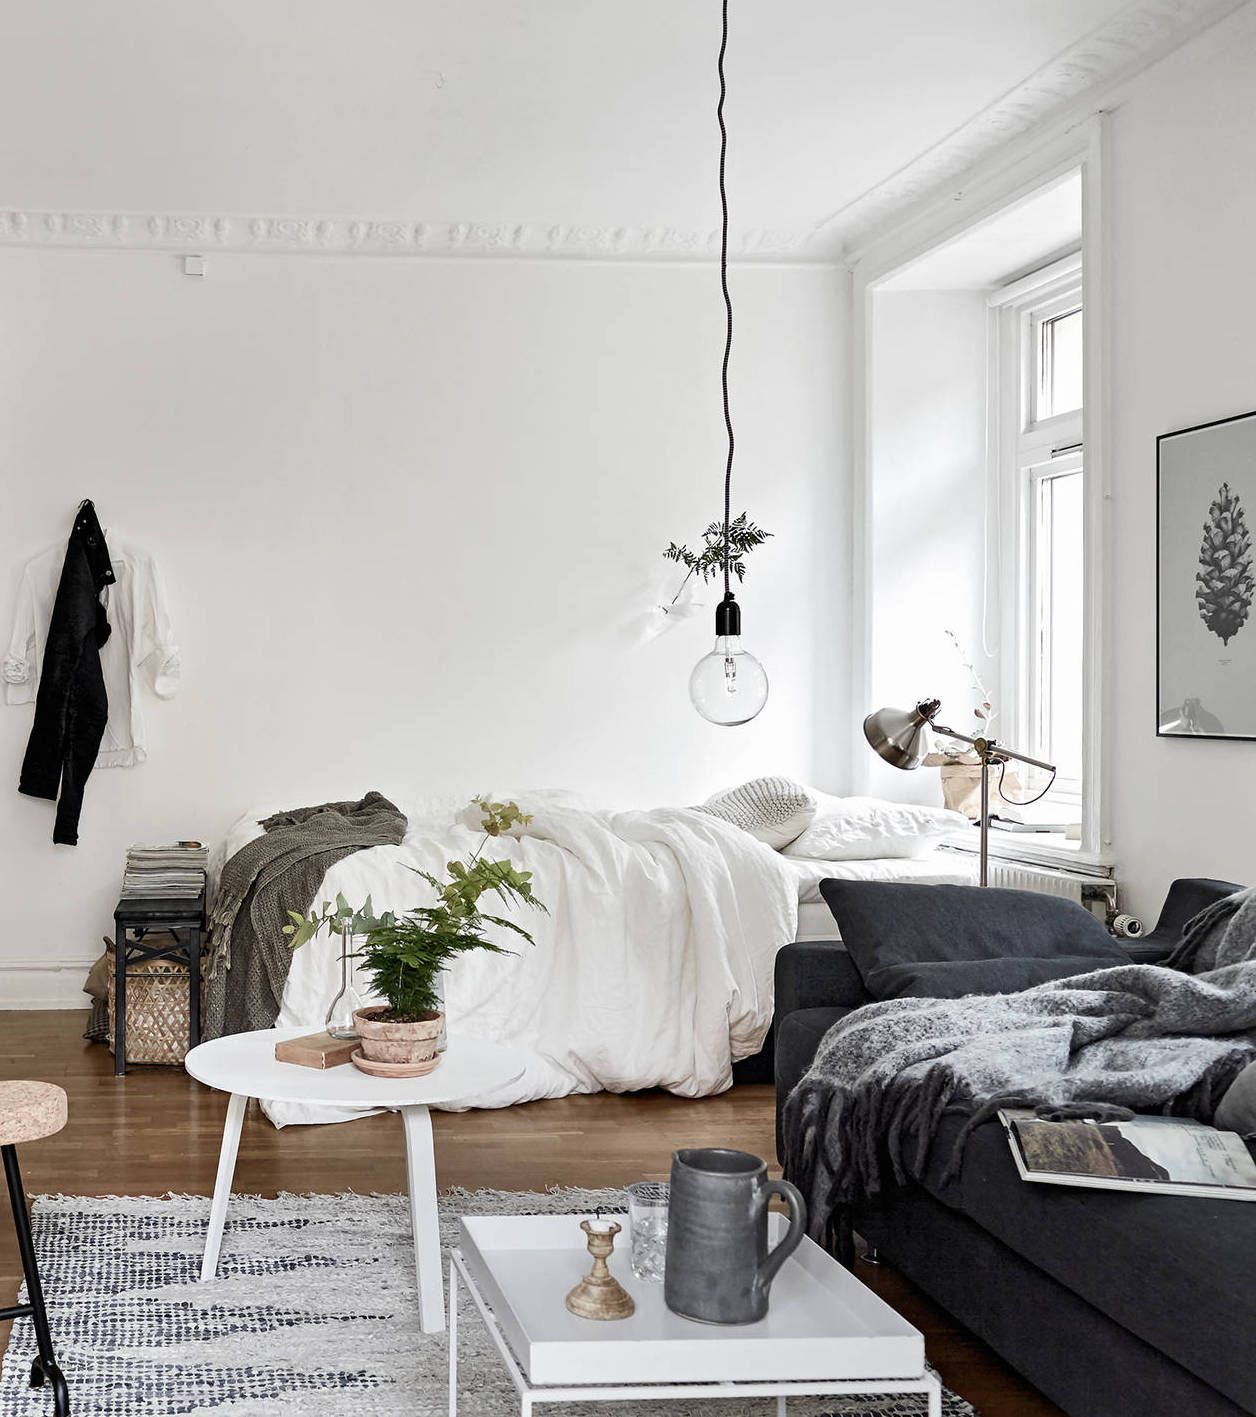 Cozy one room flat - COCO LAPINE DESIGN  One room flat, Apartment